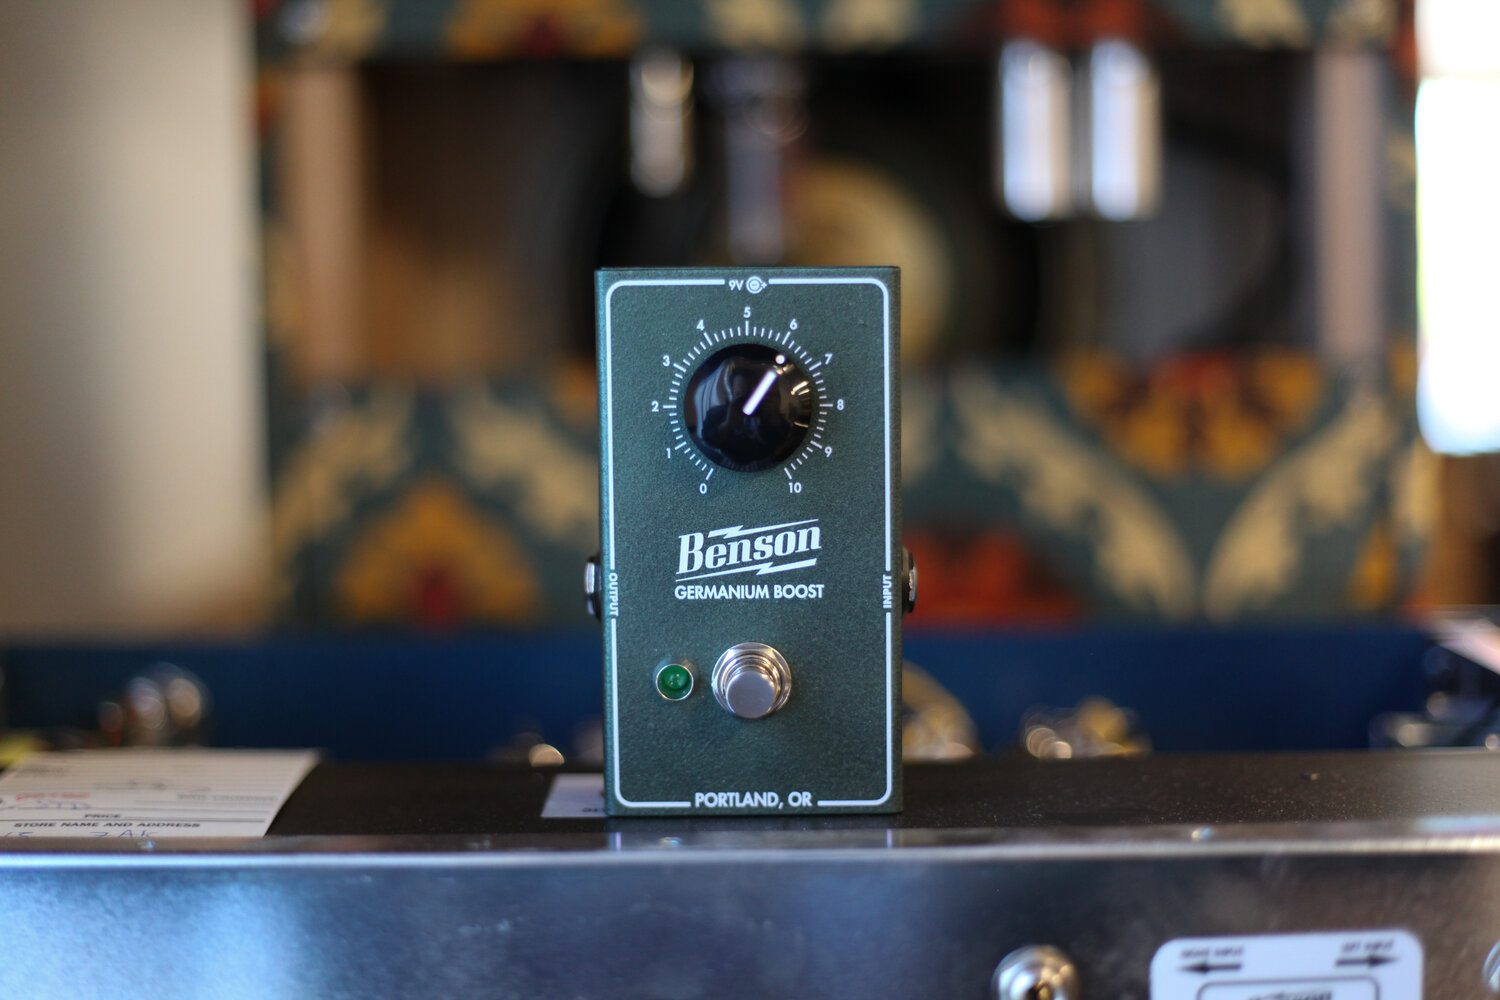 Benson Amps Germanium Boost the perfect partner for your vintage fuzz?